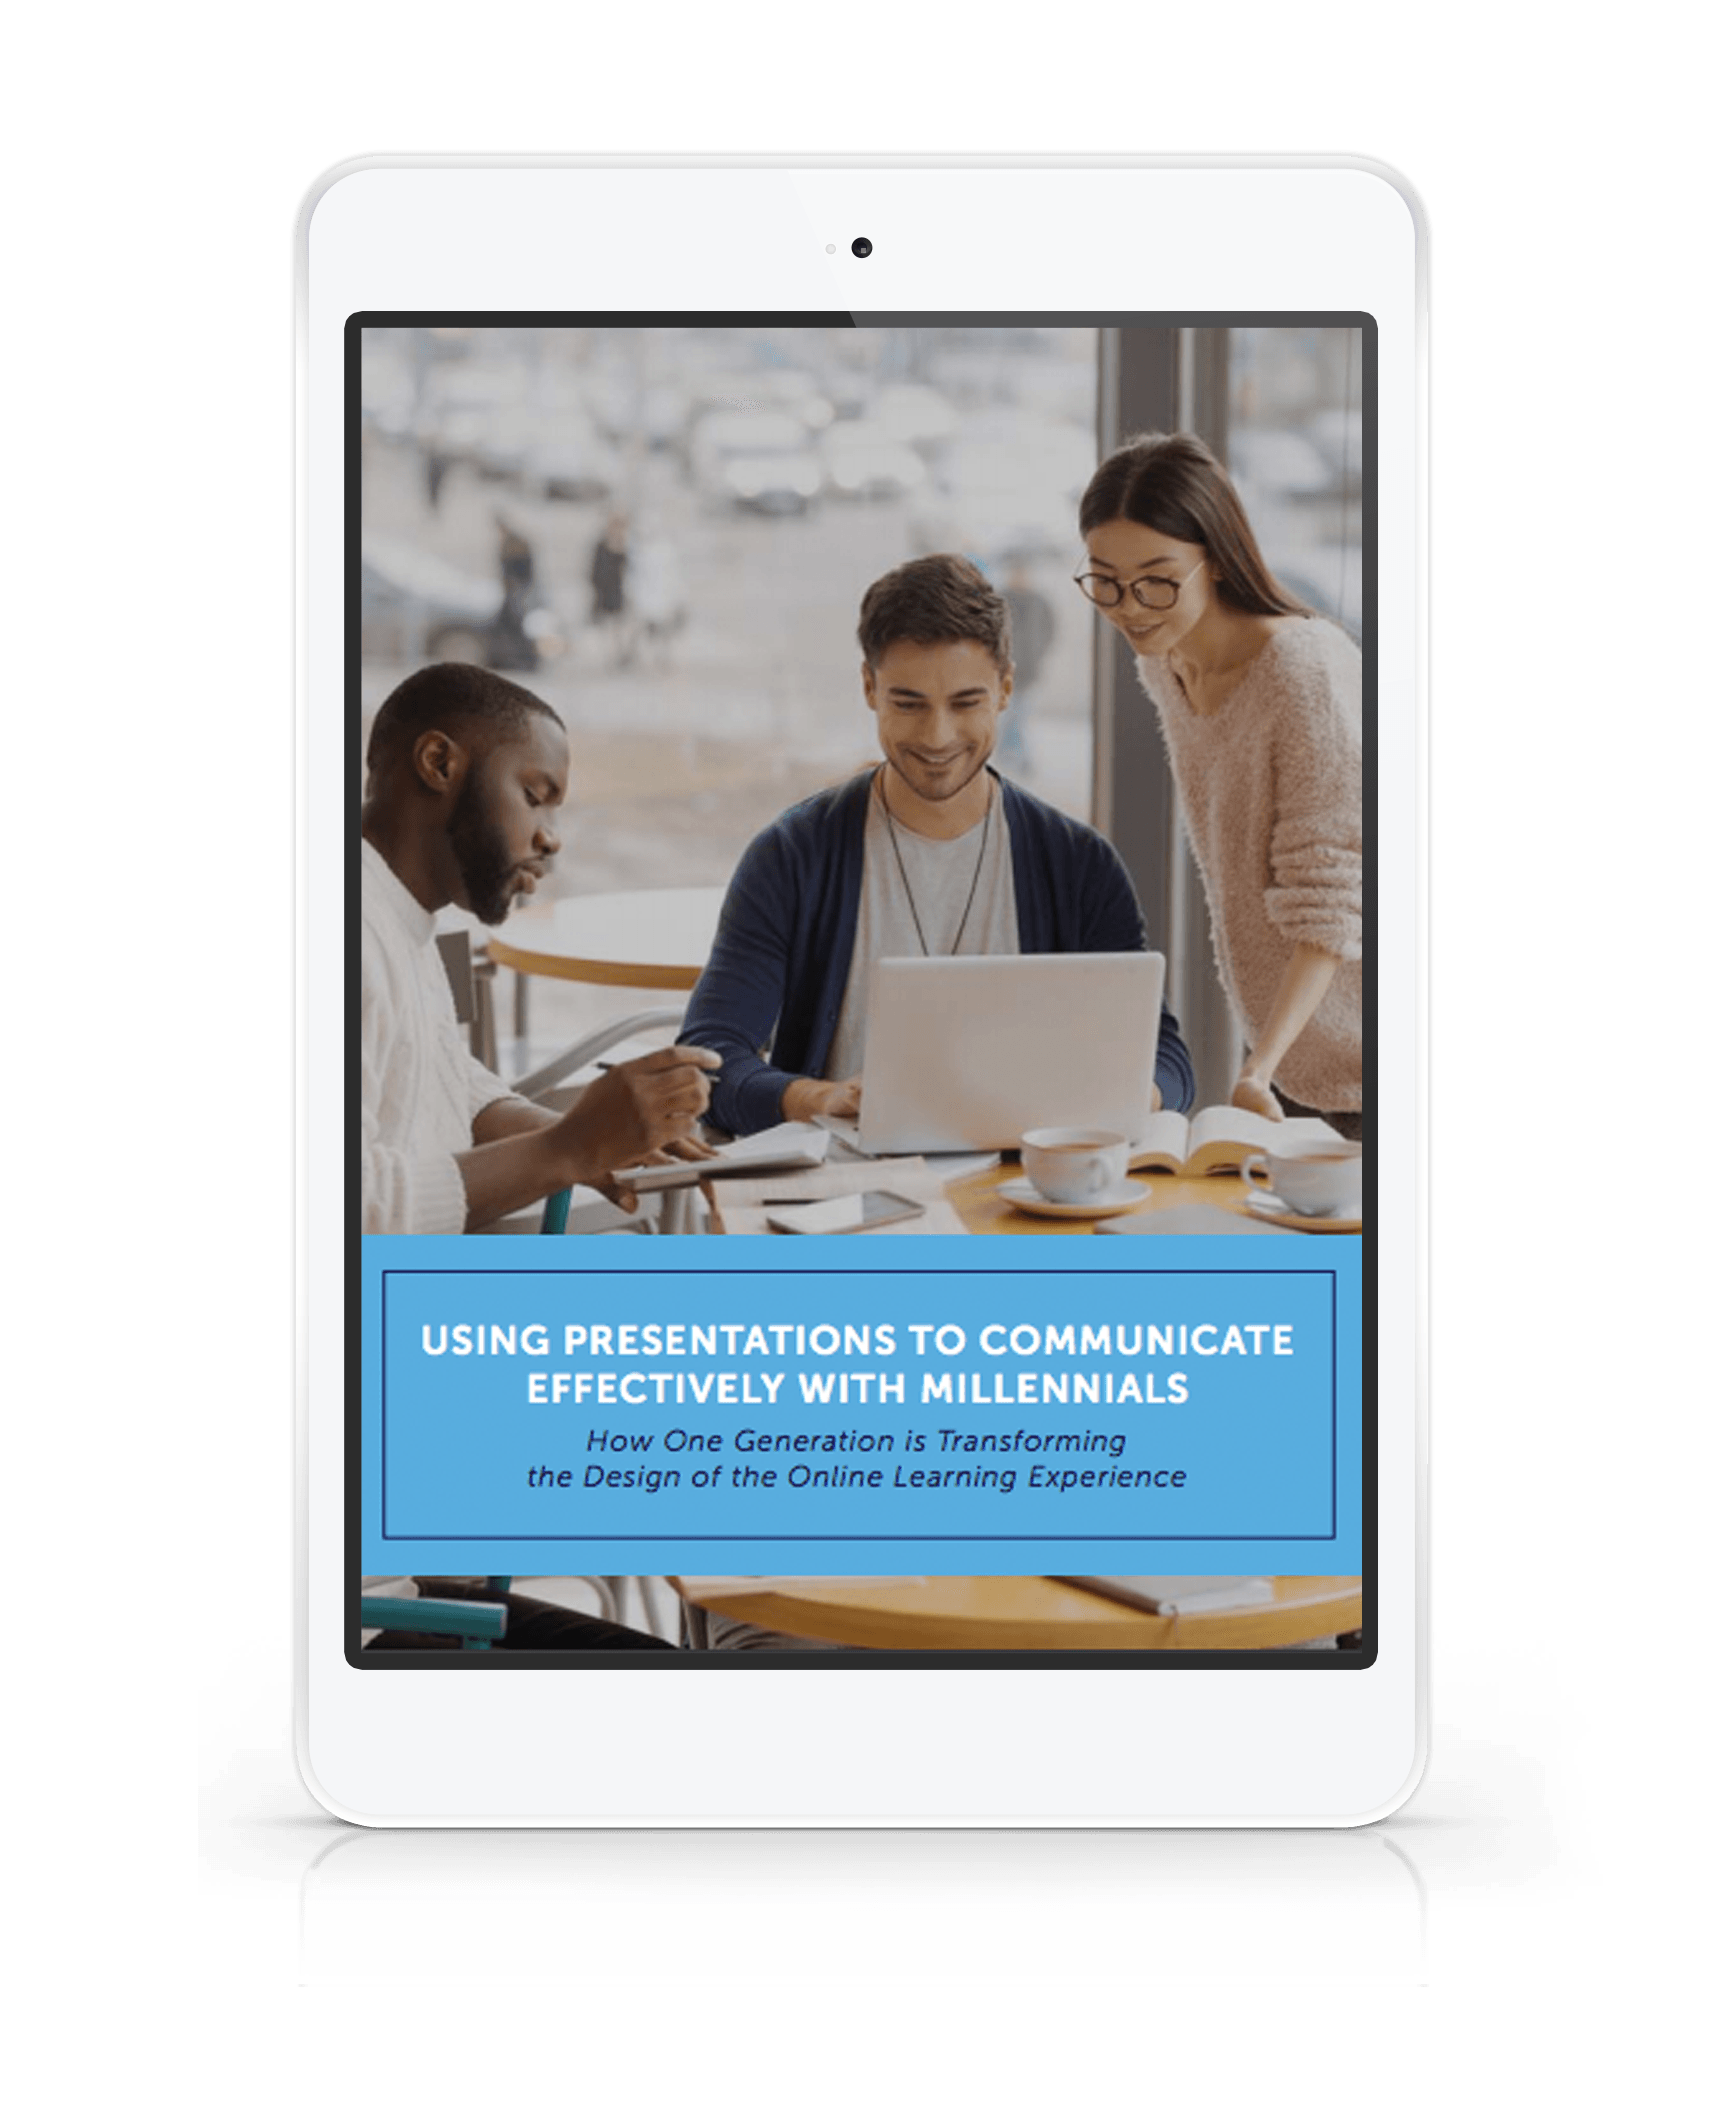 Using Presentations to Communicate with Millennials